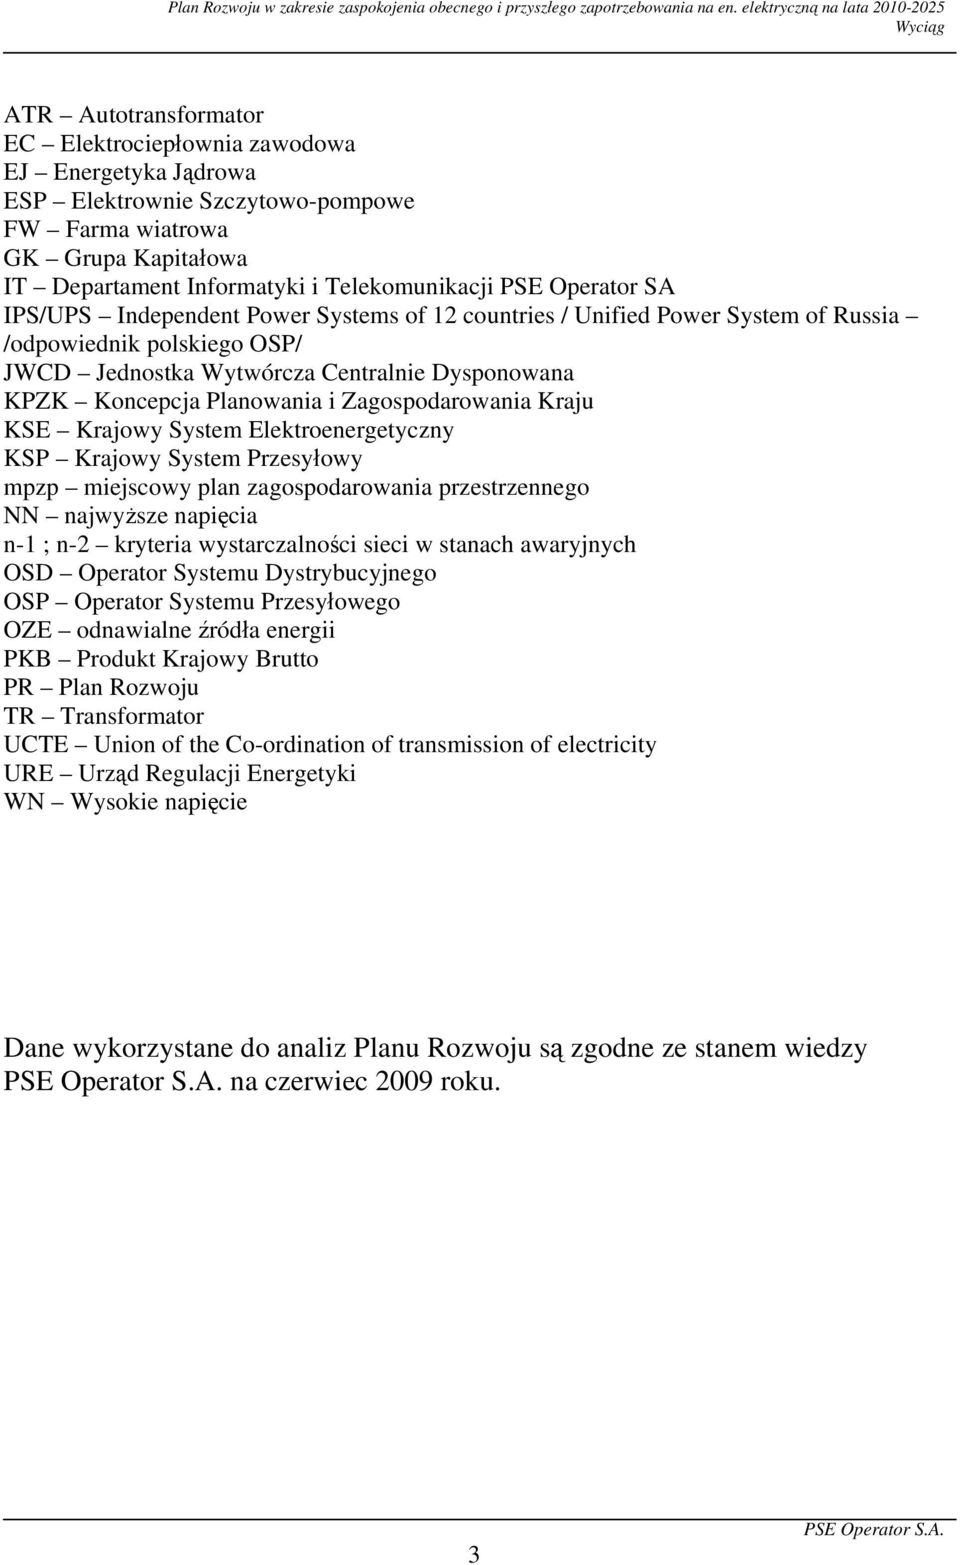 Informatyki i Telekomunikacji PSE Operator SA IPS/UPS Independent Power Systems of 12 countries / Unified Power System of Russia /odpowiednik polskiego OSP/ JWCD Jednostka Wytwórcza Centralnie